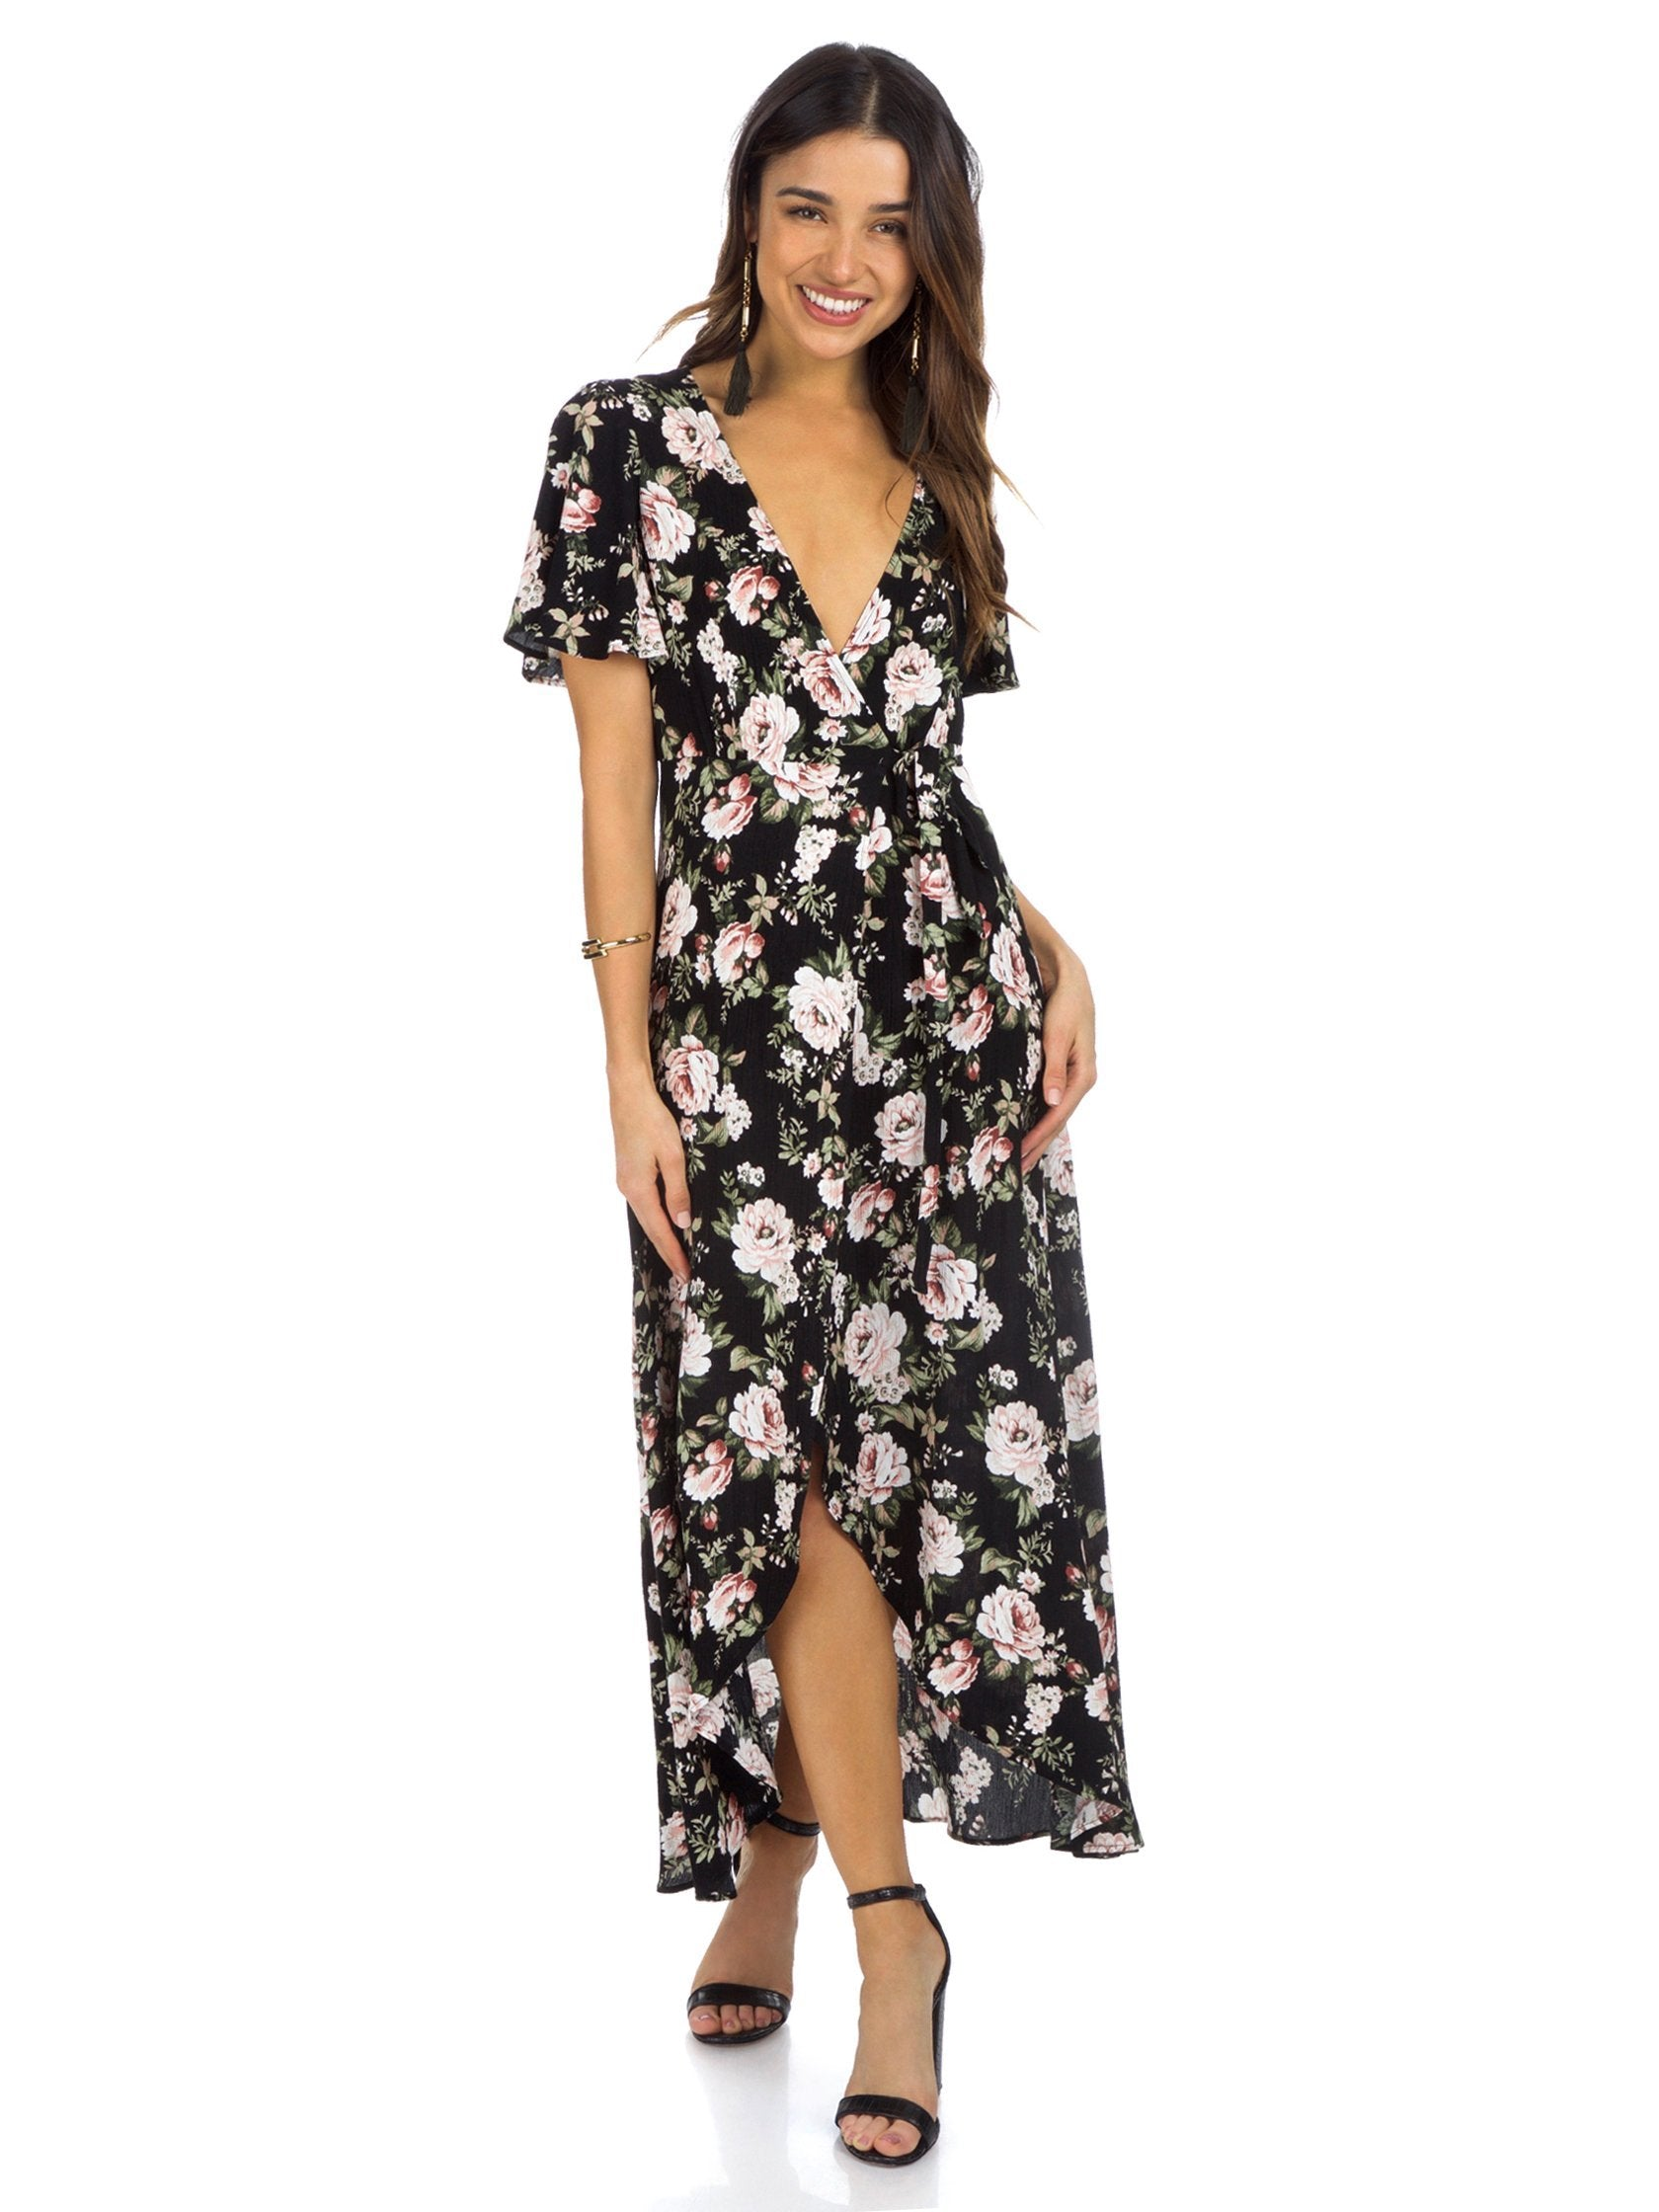 Girl outfit in a dress rental from Show Me Your Mumu called Marianne Wrap Dress